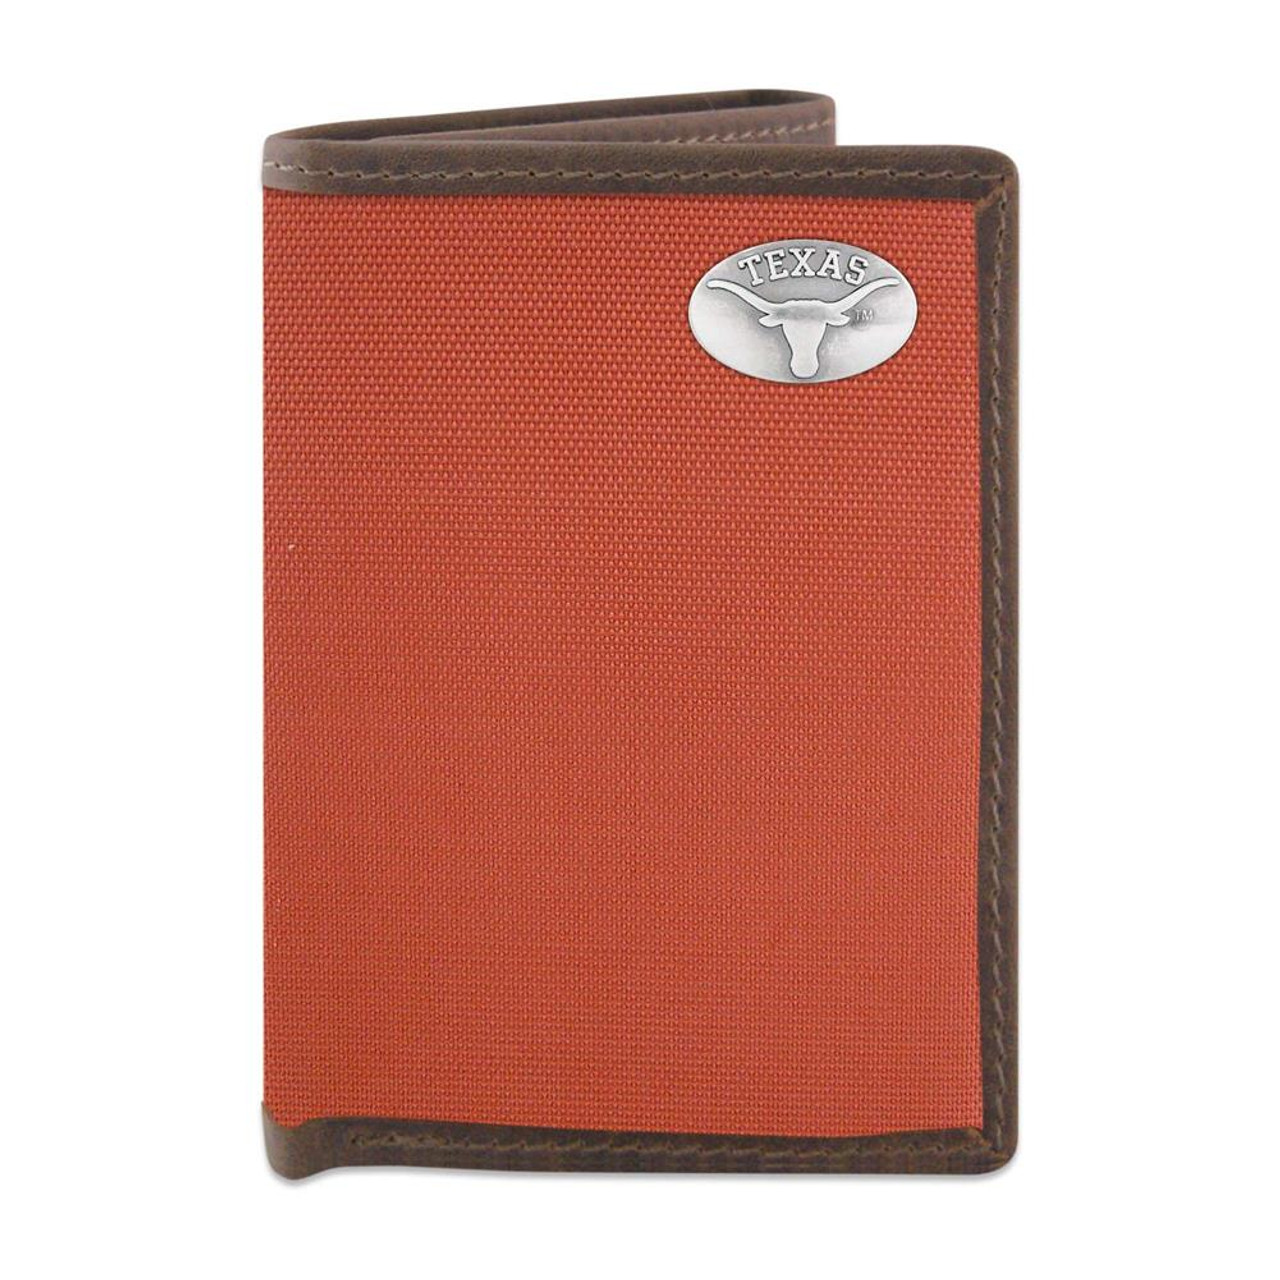 Youth University of Texas Longhorns Wallet Nylon/Leather Concho Wallet